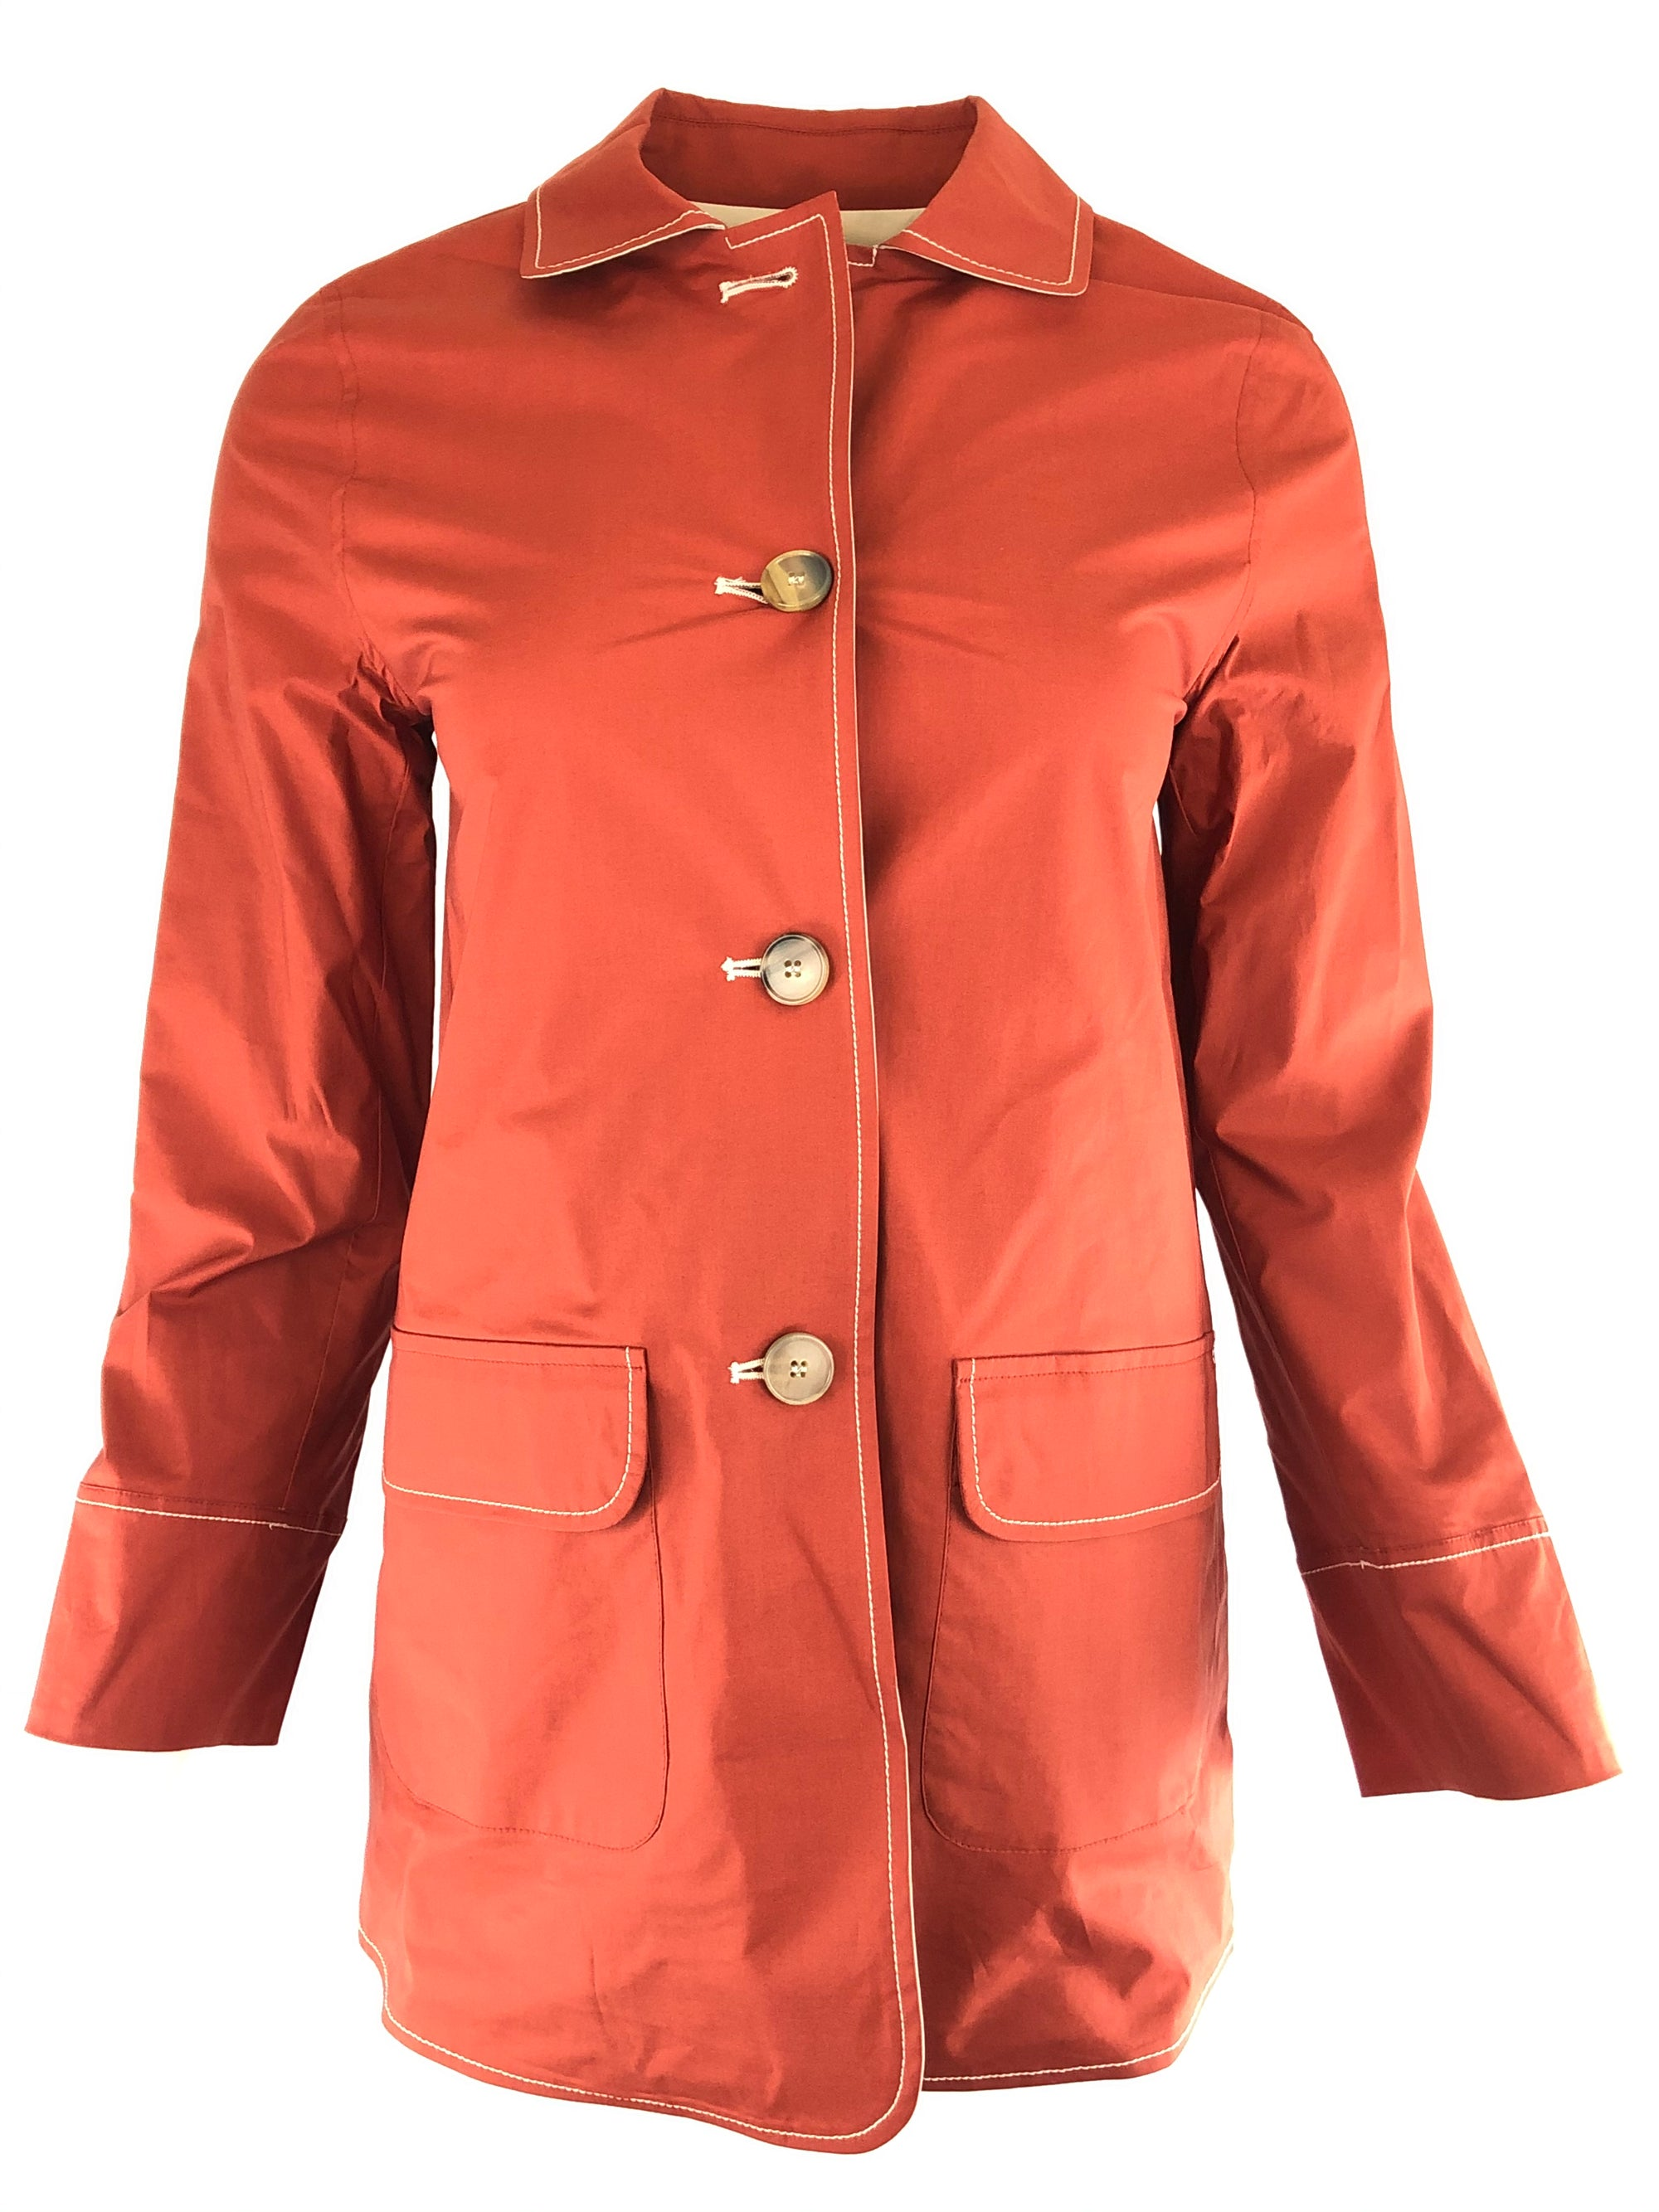 ROSSO 35 WOMEN'S REVERSIBLE JACKET - CINNABAR/TAN